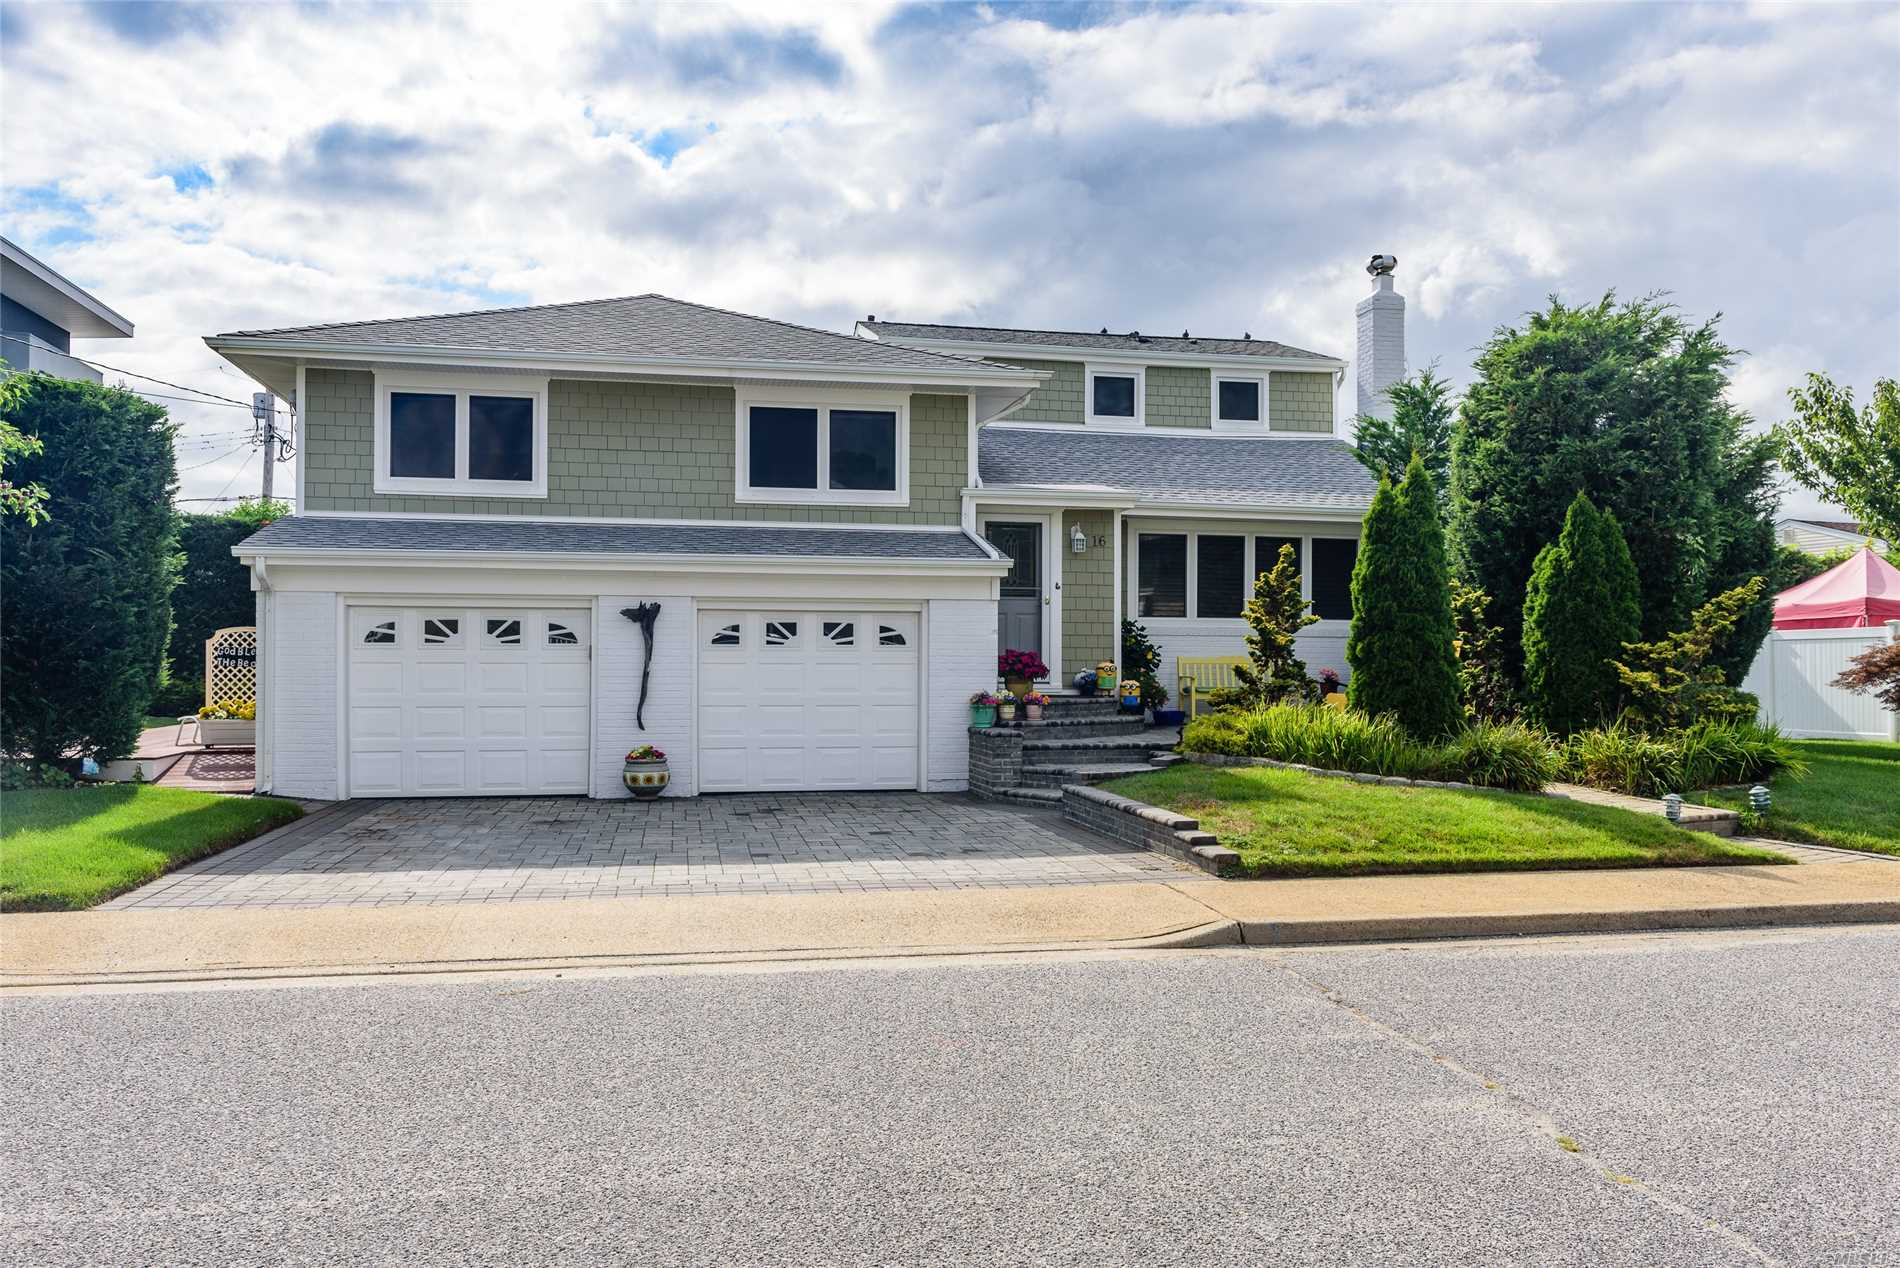 16 Leamington St - Lido Beach, New York